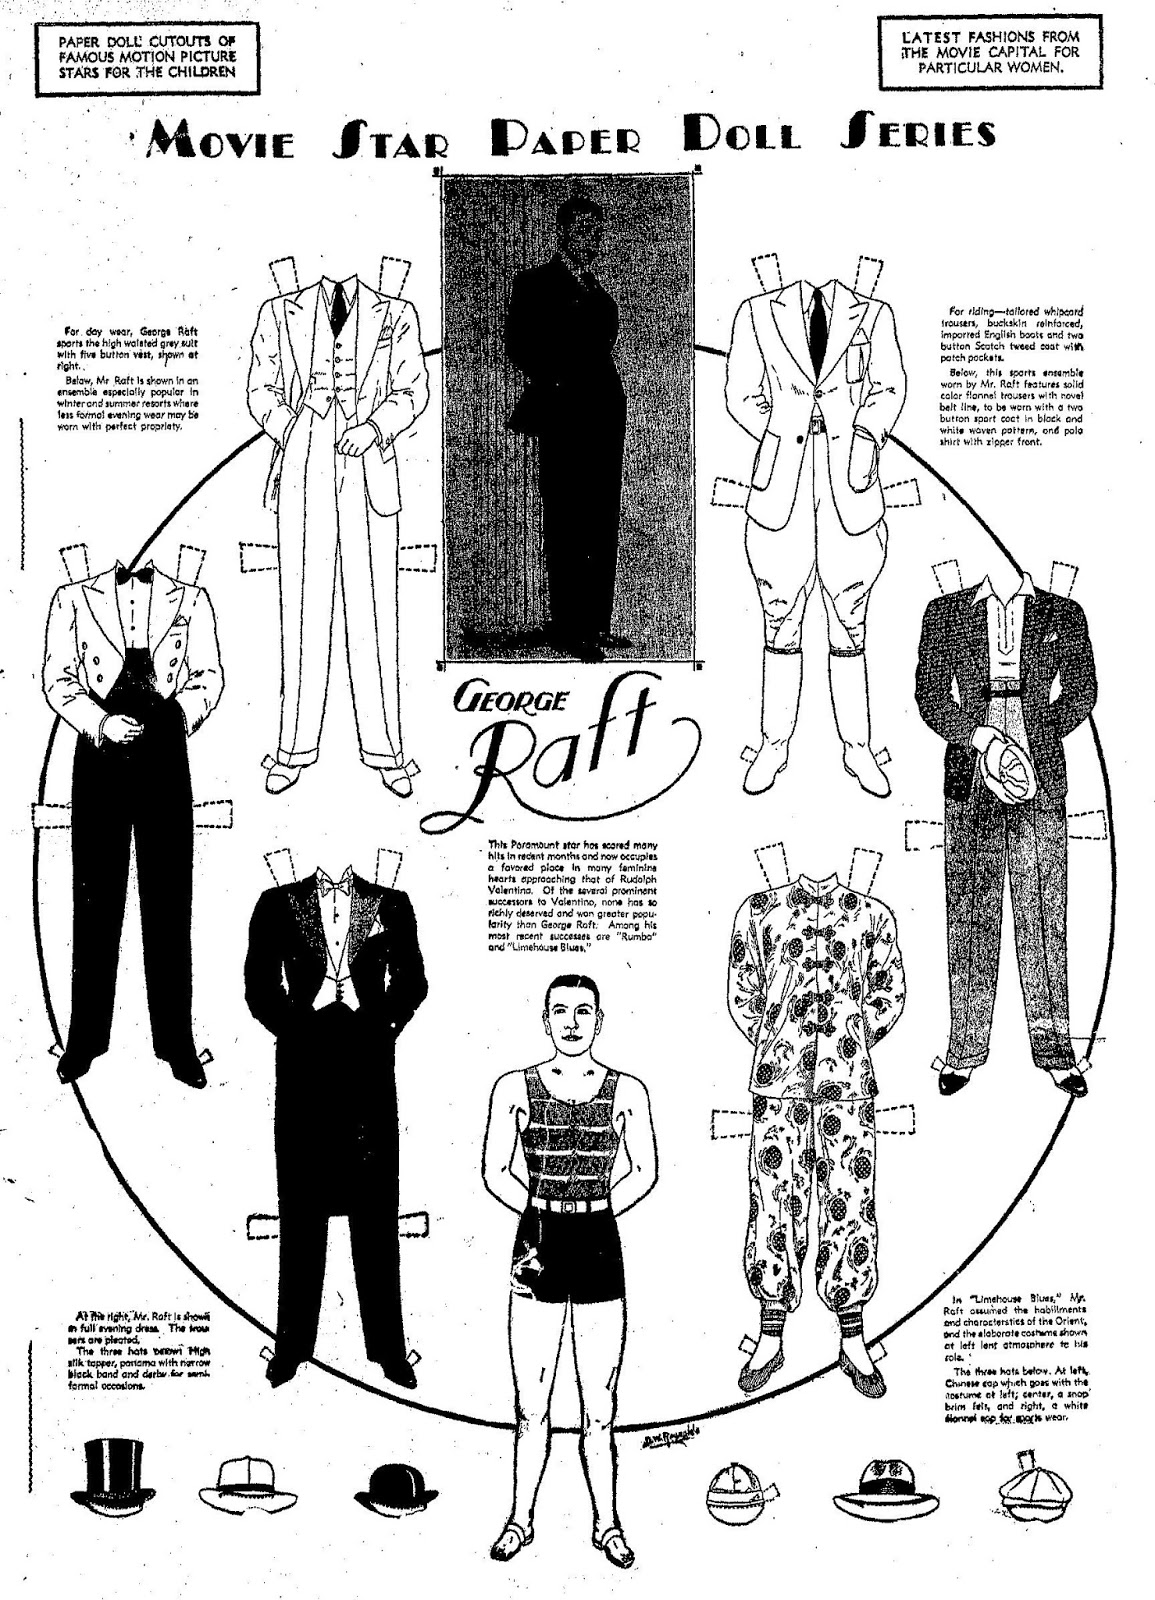 Mostly Paper Dolls Too!: GEORGE RAFT Paper Dolls, 1935